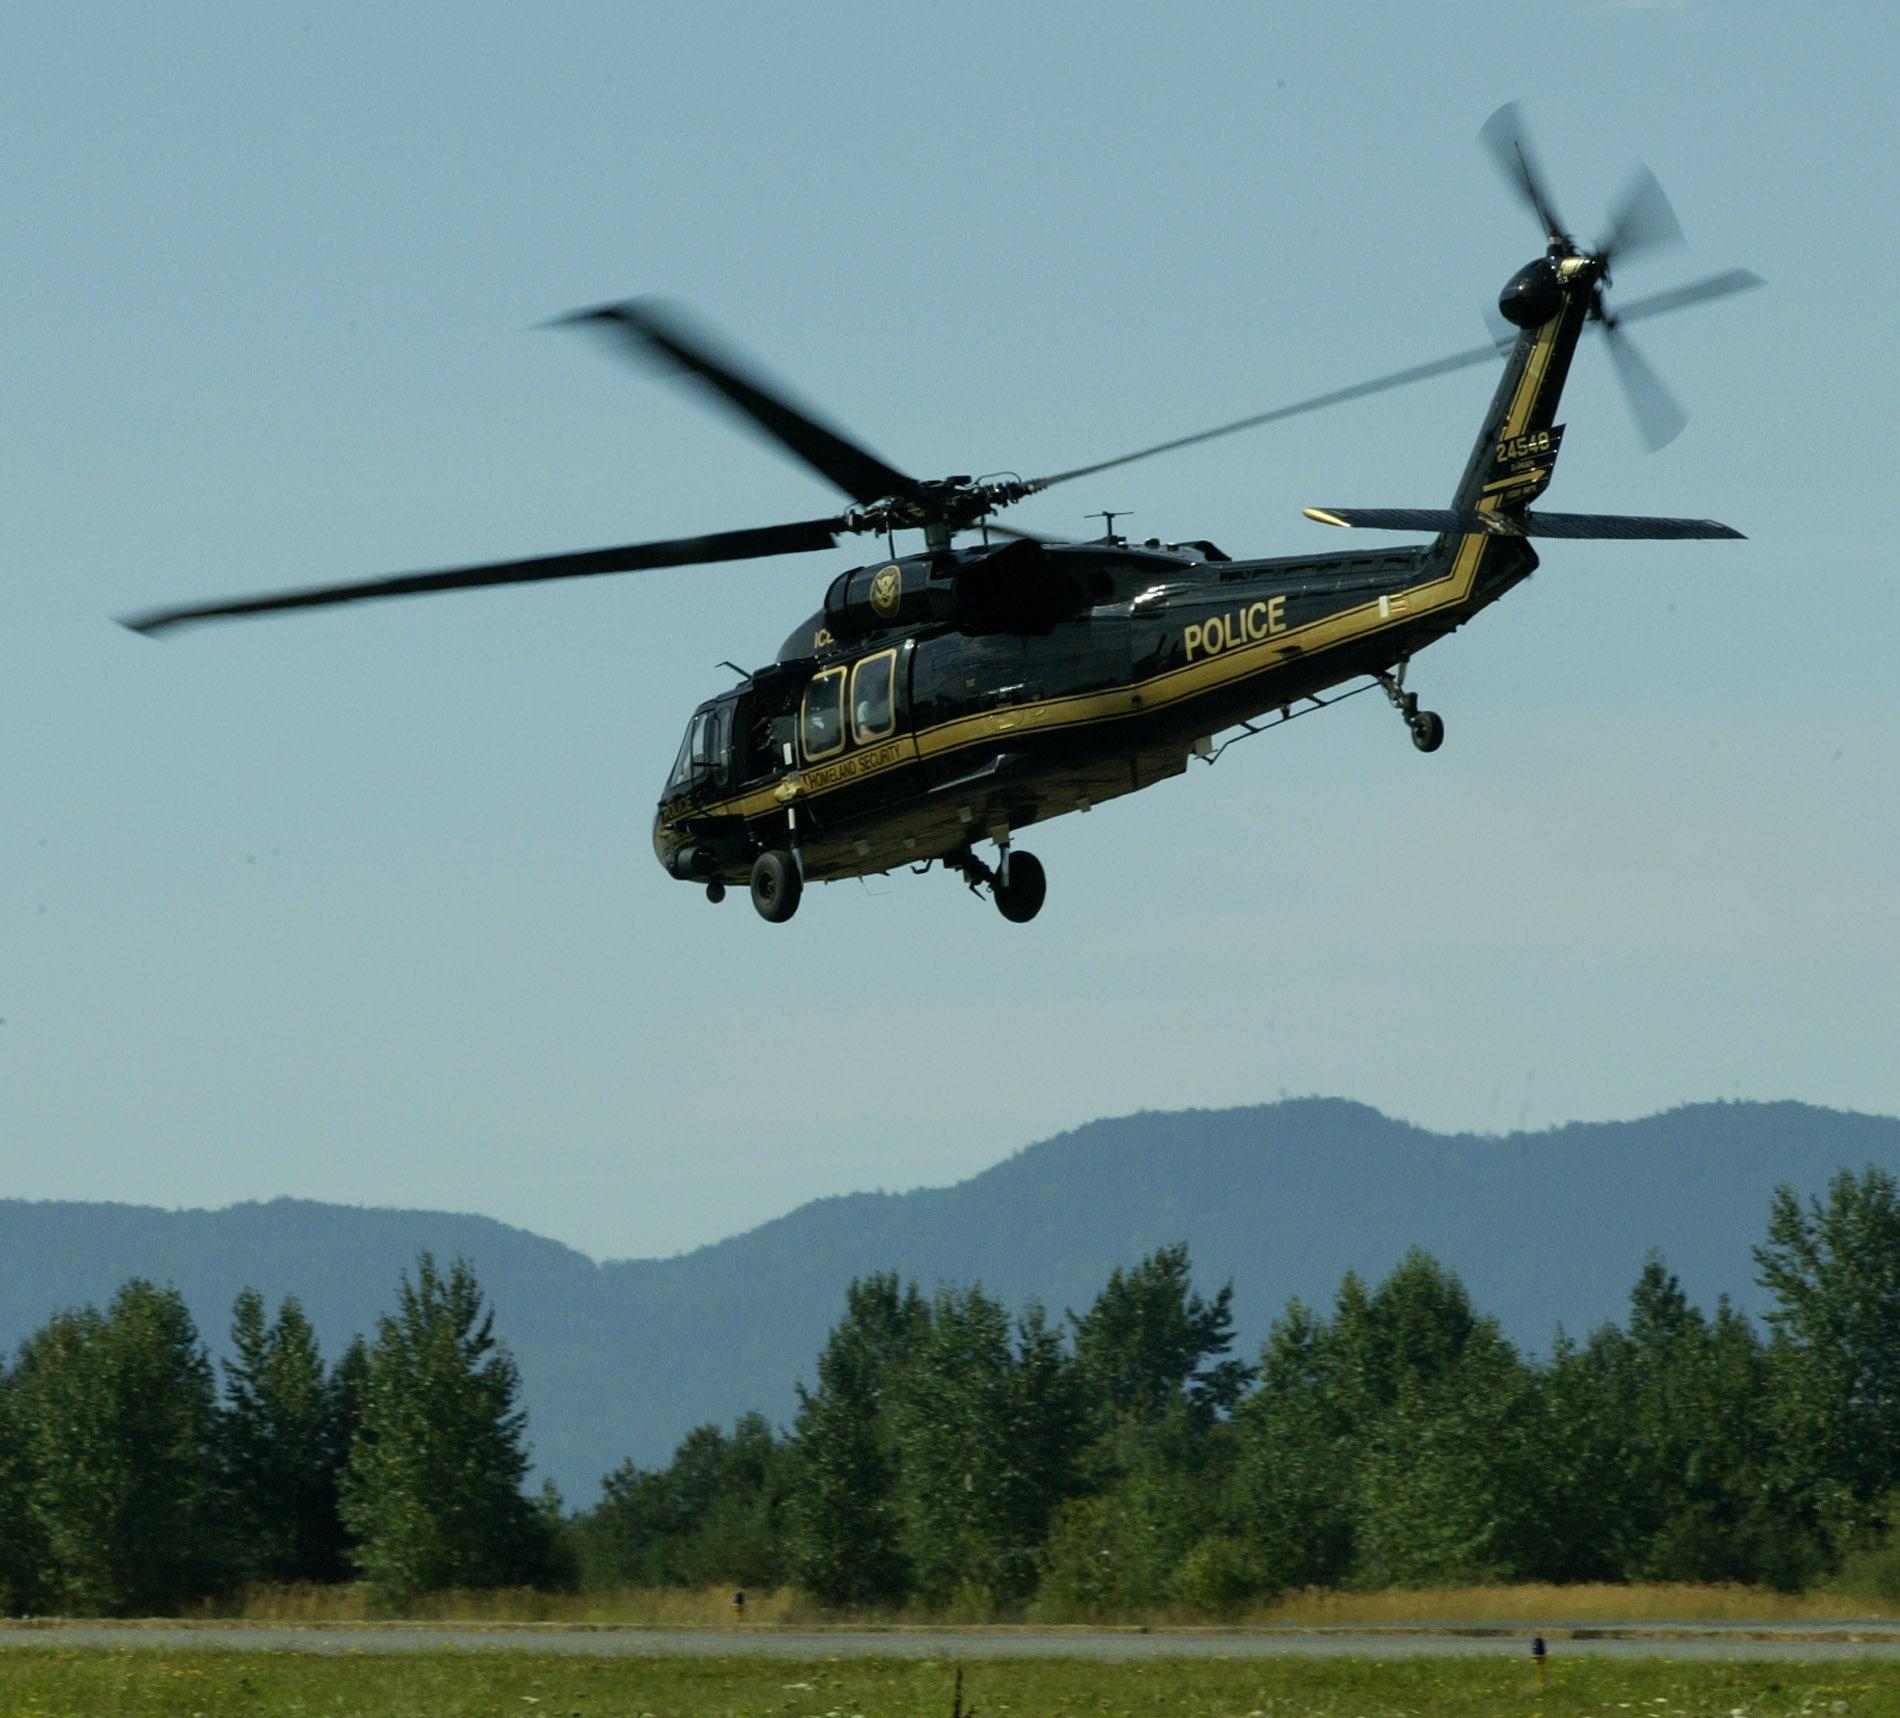 A UH-60-A Blackhawk helicopter used by the Immigration and Customs Enforcement Office of Air and Marine Operations takes off on a demonstration flight from the Bellingham International Airport Friday, Aug. 20, 2004 in Bellingham, Wash. Helicopters similar to this one will be based at the Department of Homeland Security Air and Marine facility based in Bellingham which began operations Friday along the U.S. - Canadian border. (AP Photo/Ted S. Warren)